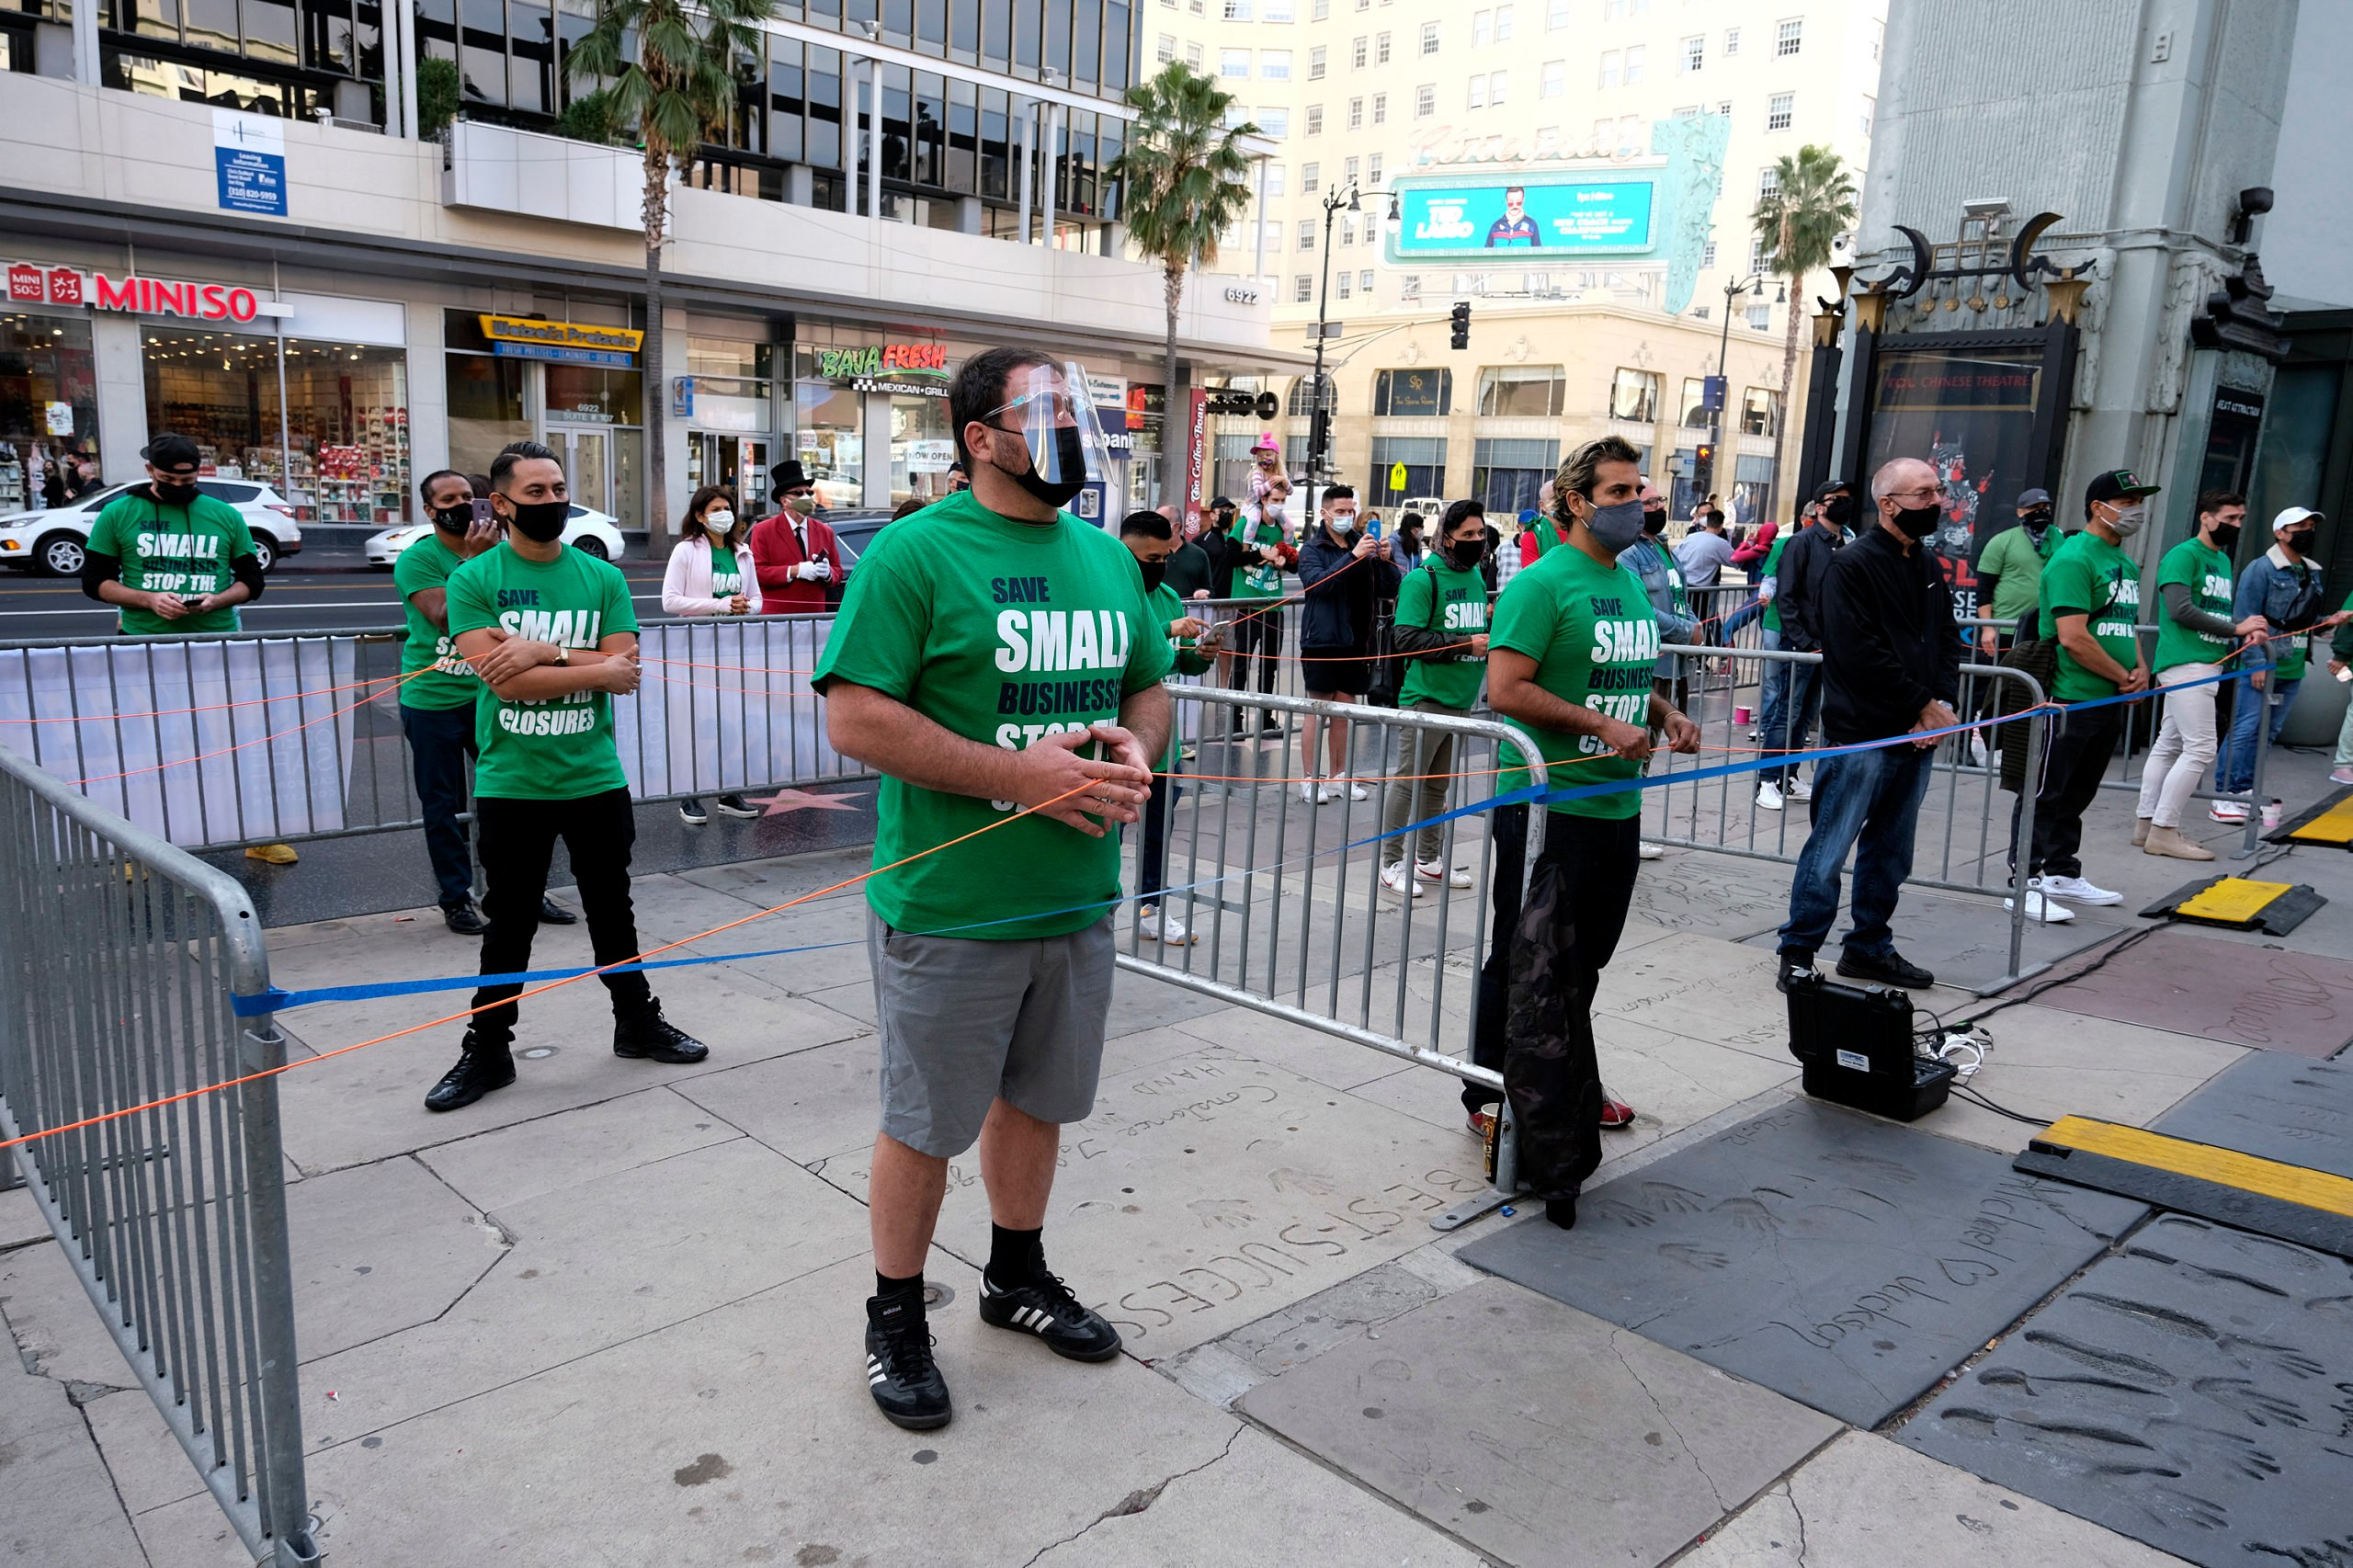 Small business owners protest in Los Angeles, California on Dec. 12. (Ringo Chiu/AFP via Getty Images)